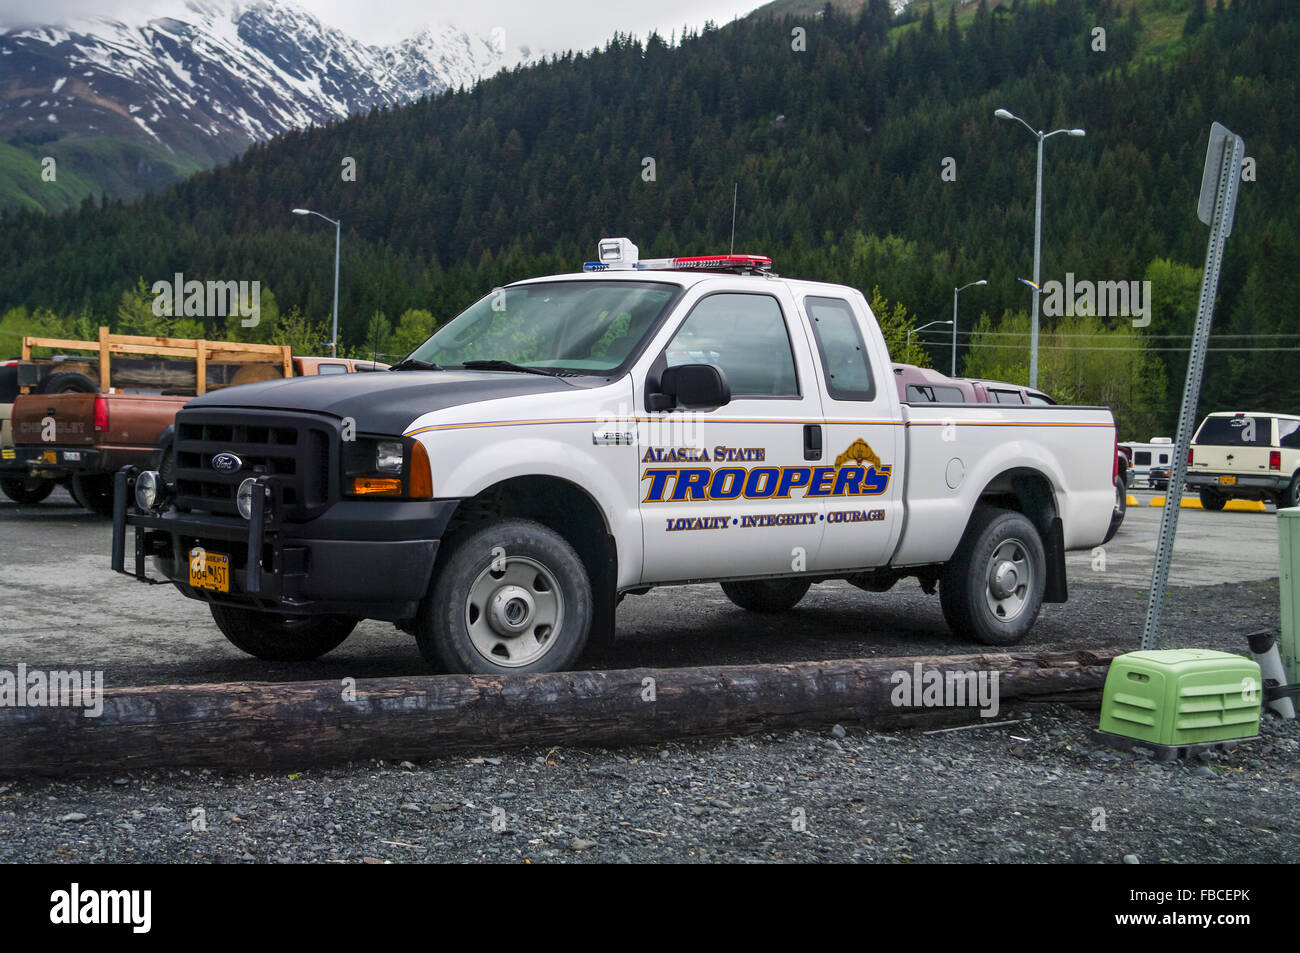 Ford Pickup Truck Stock Photos Images Alamy 1955 F250 4x4 Alaska State Troopers Xl Super Duty Image